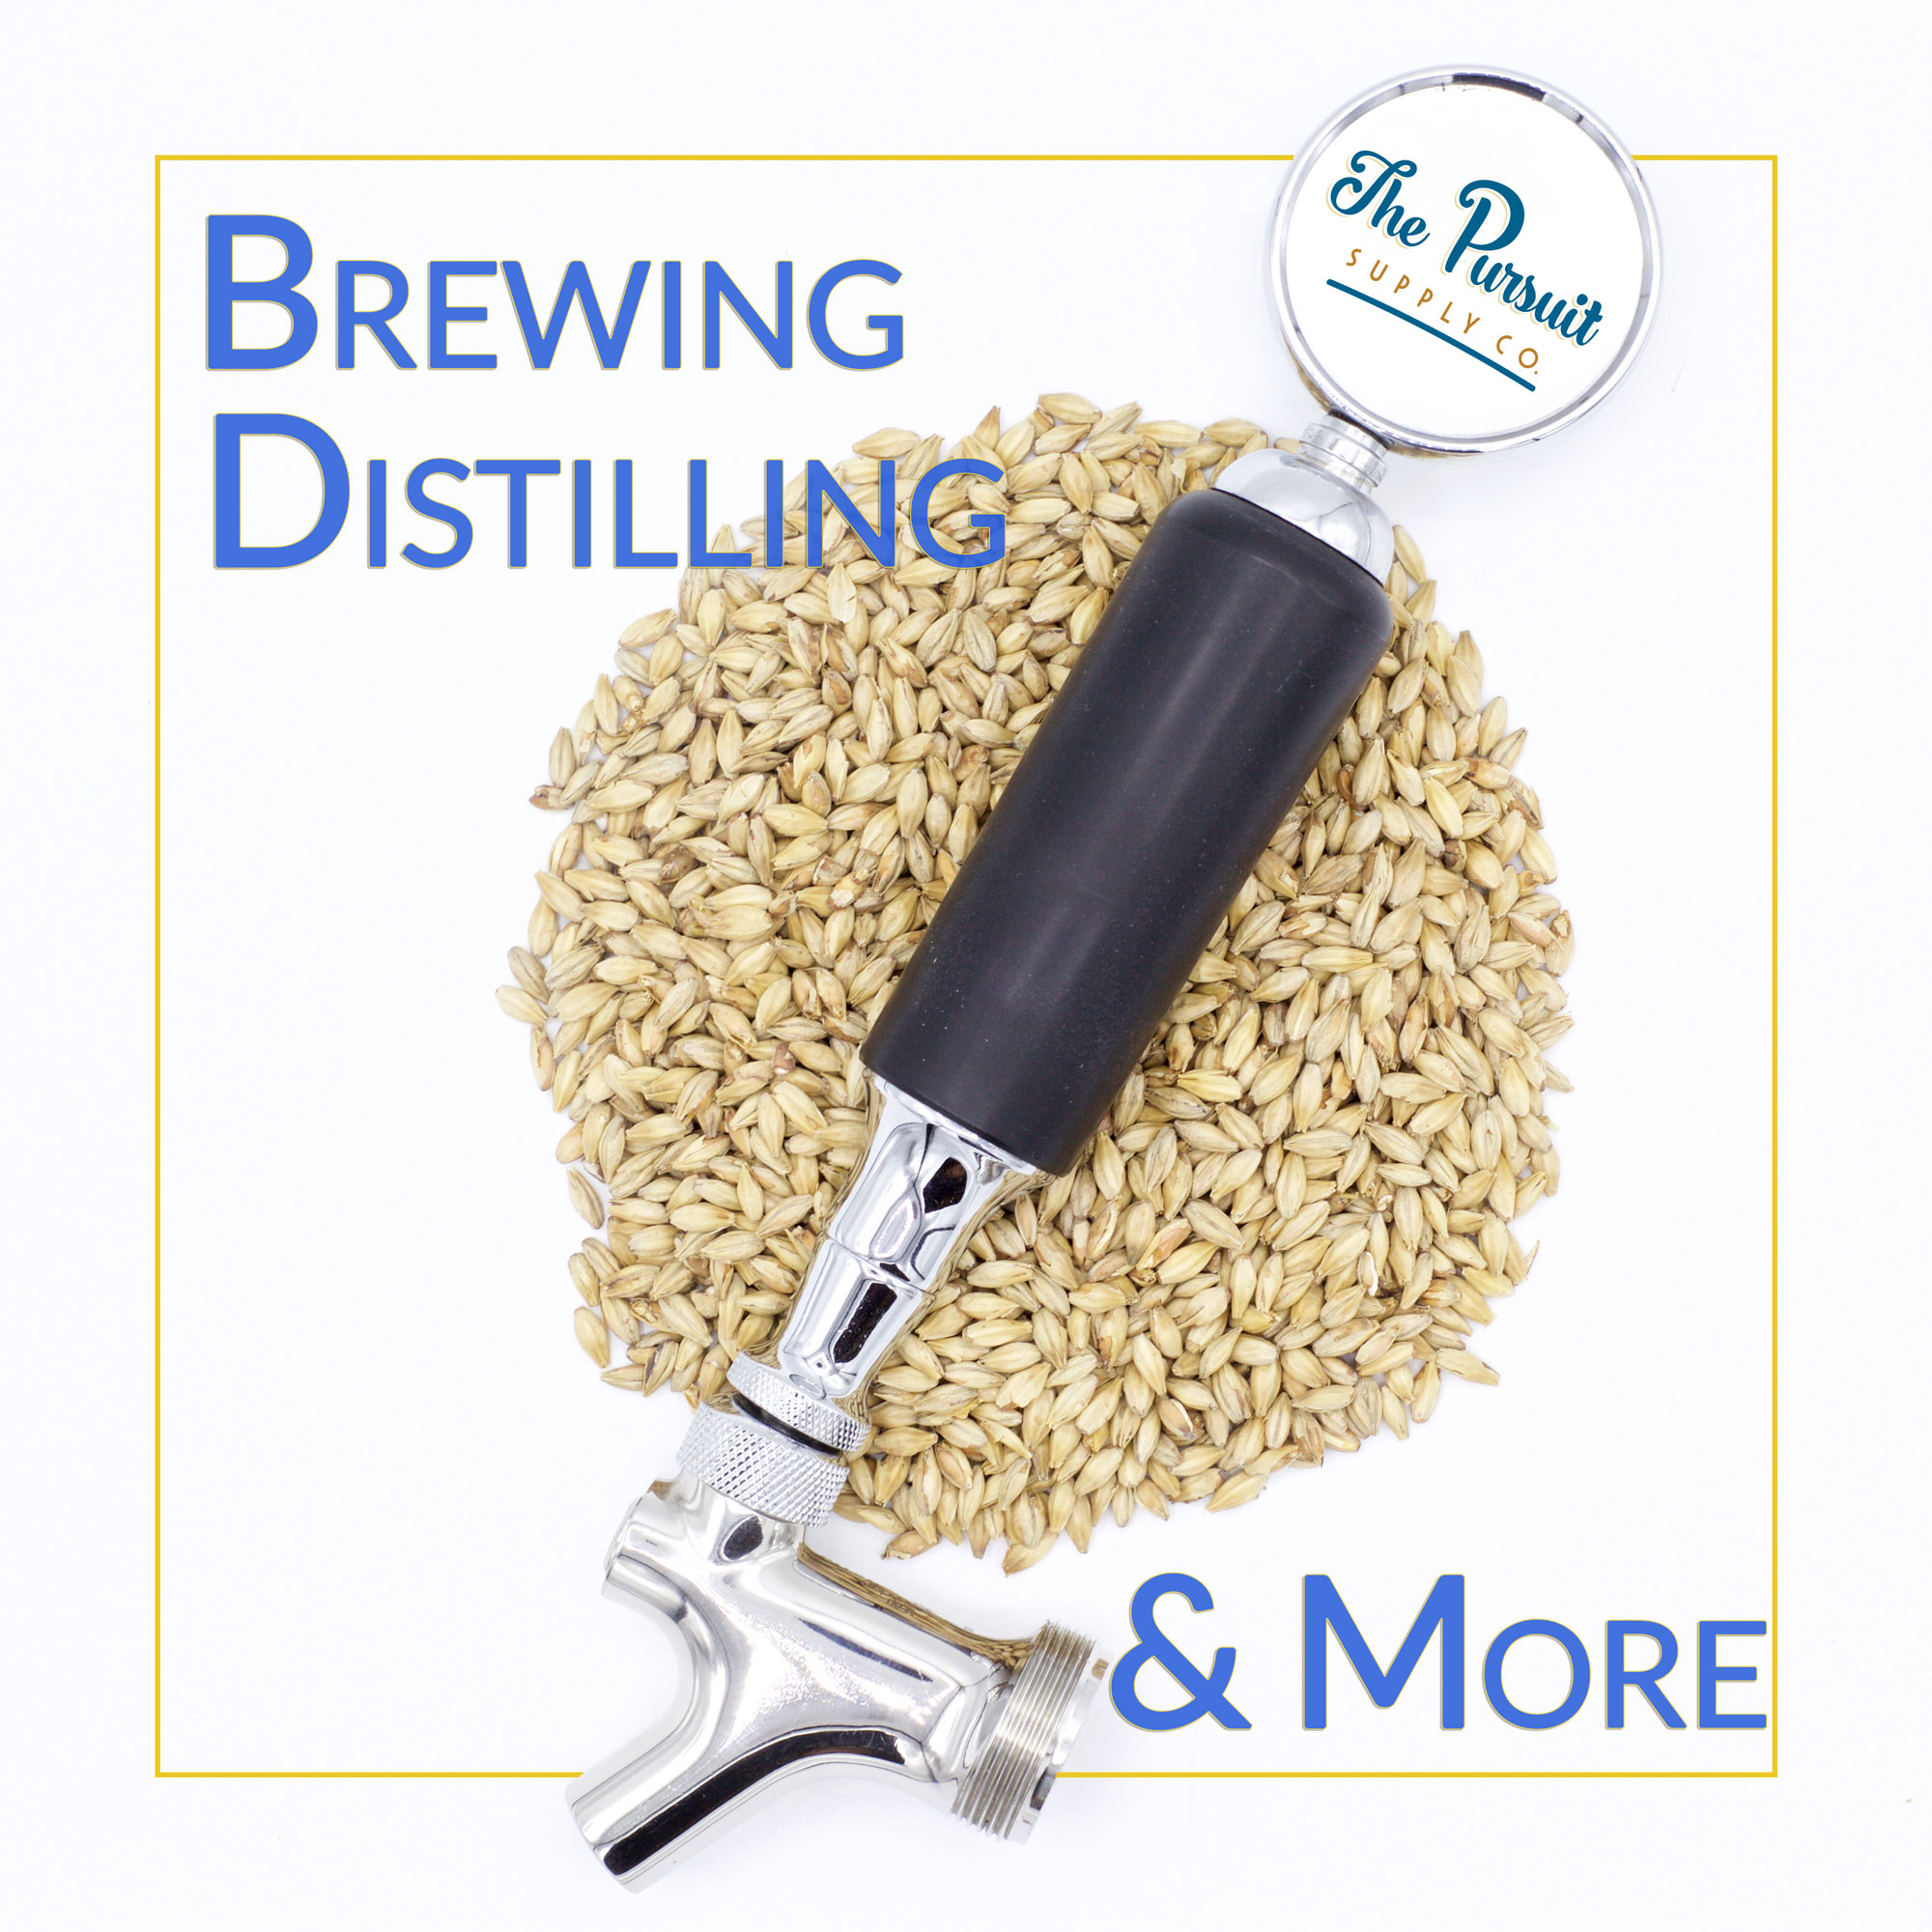 Brewing, Distilling, & More